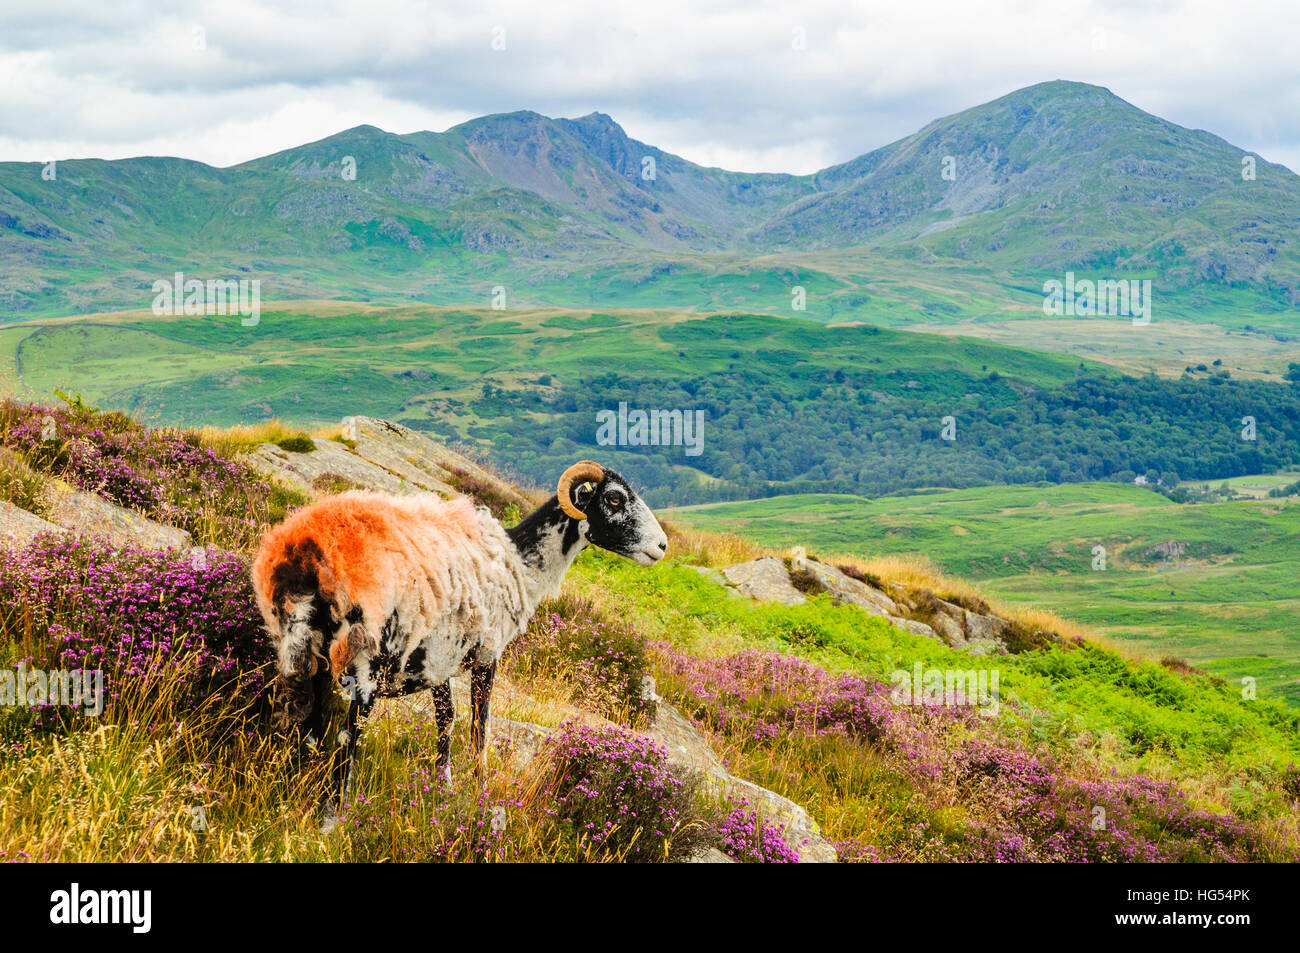 Sheep on Blawith Fells in the Lake District with Dow Crag and Coniston Old Man behind - Stock Image